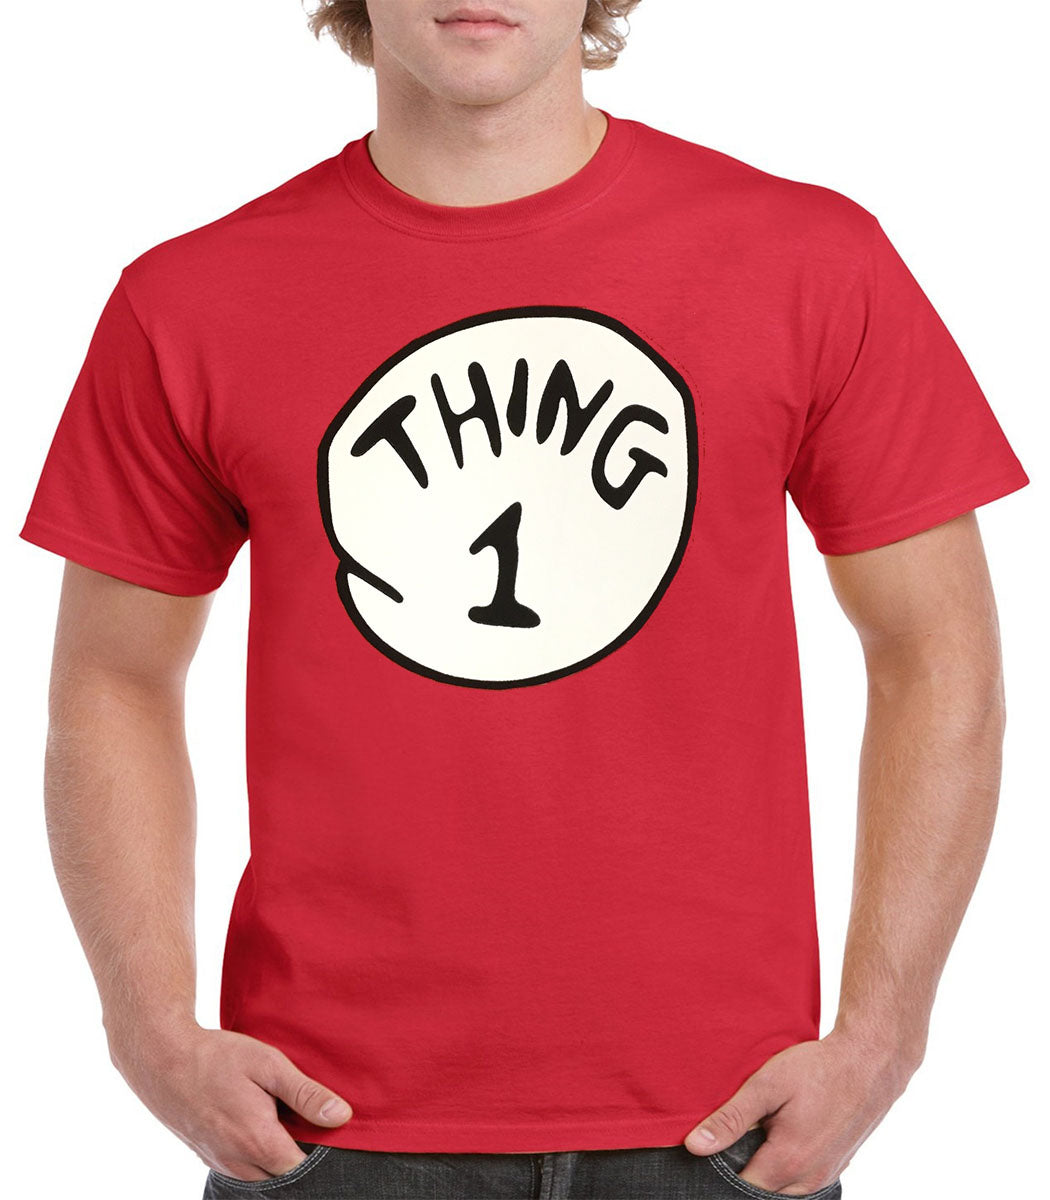 Women's Thing 1-10, Mom, Grandma, Aunt Cat In the Hat Dr. Seuss Short Sleeve T-Shirt